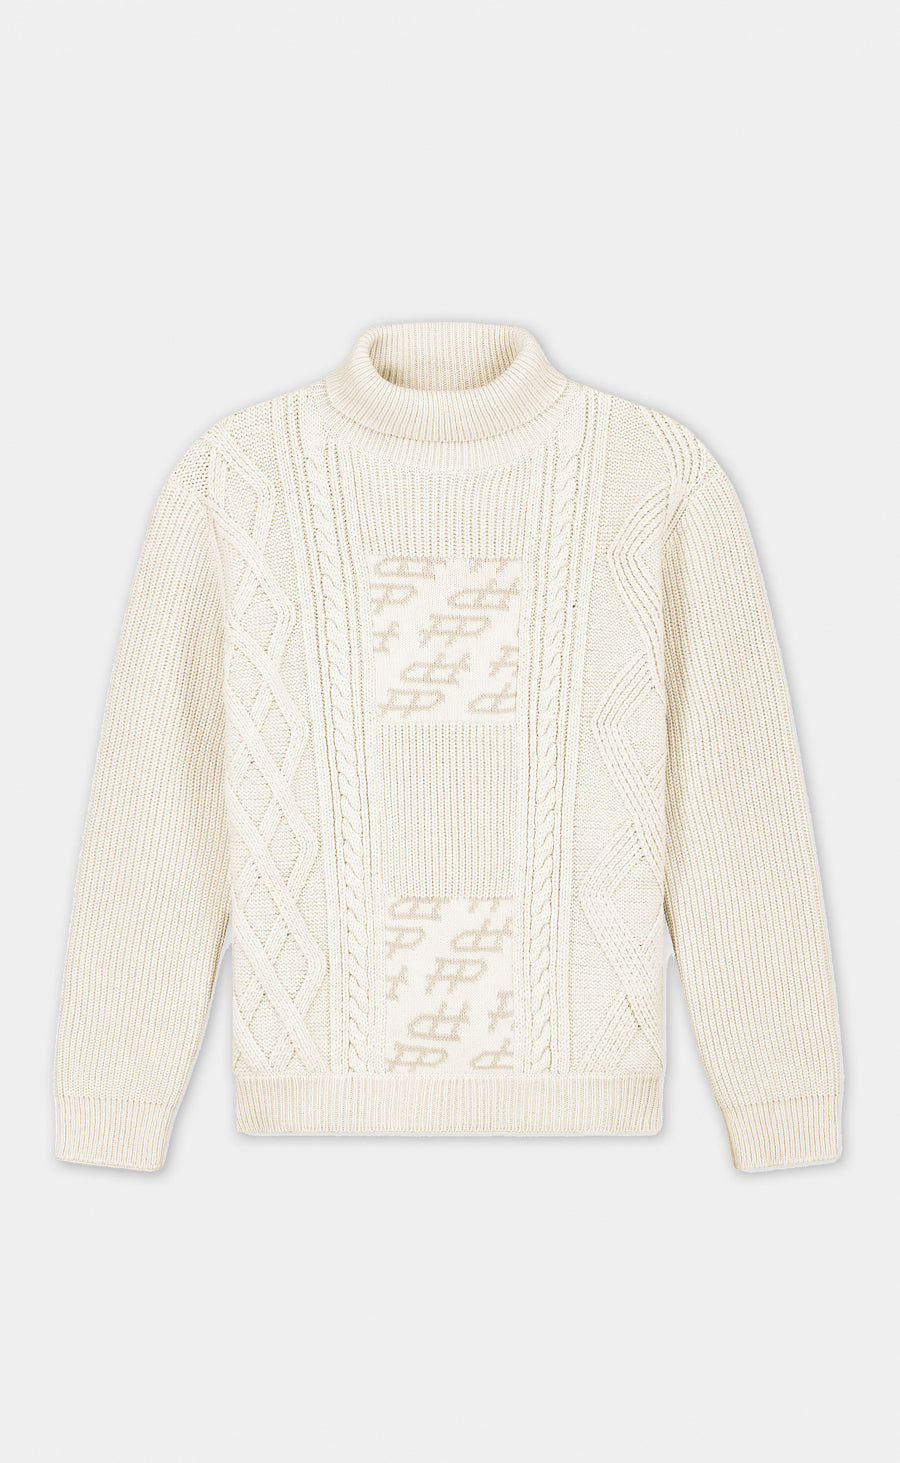 Heavy Knit Beige - men